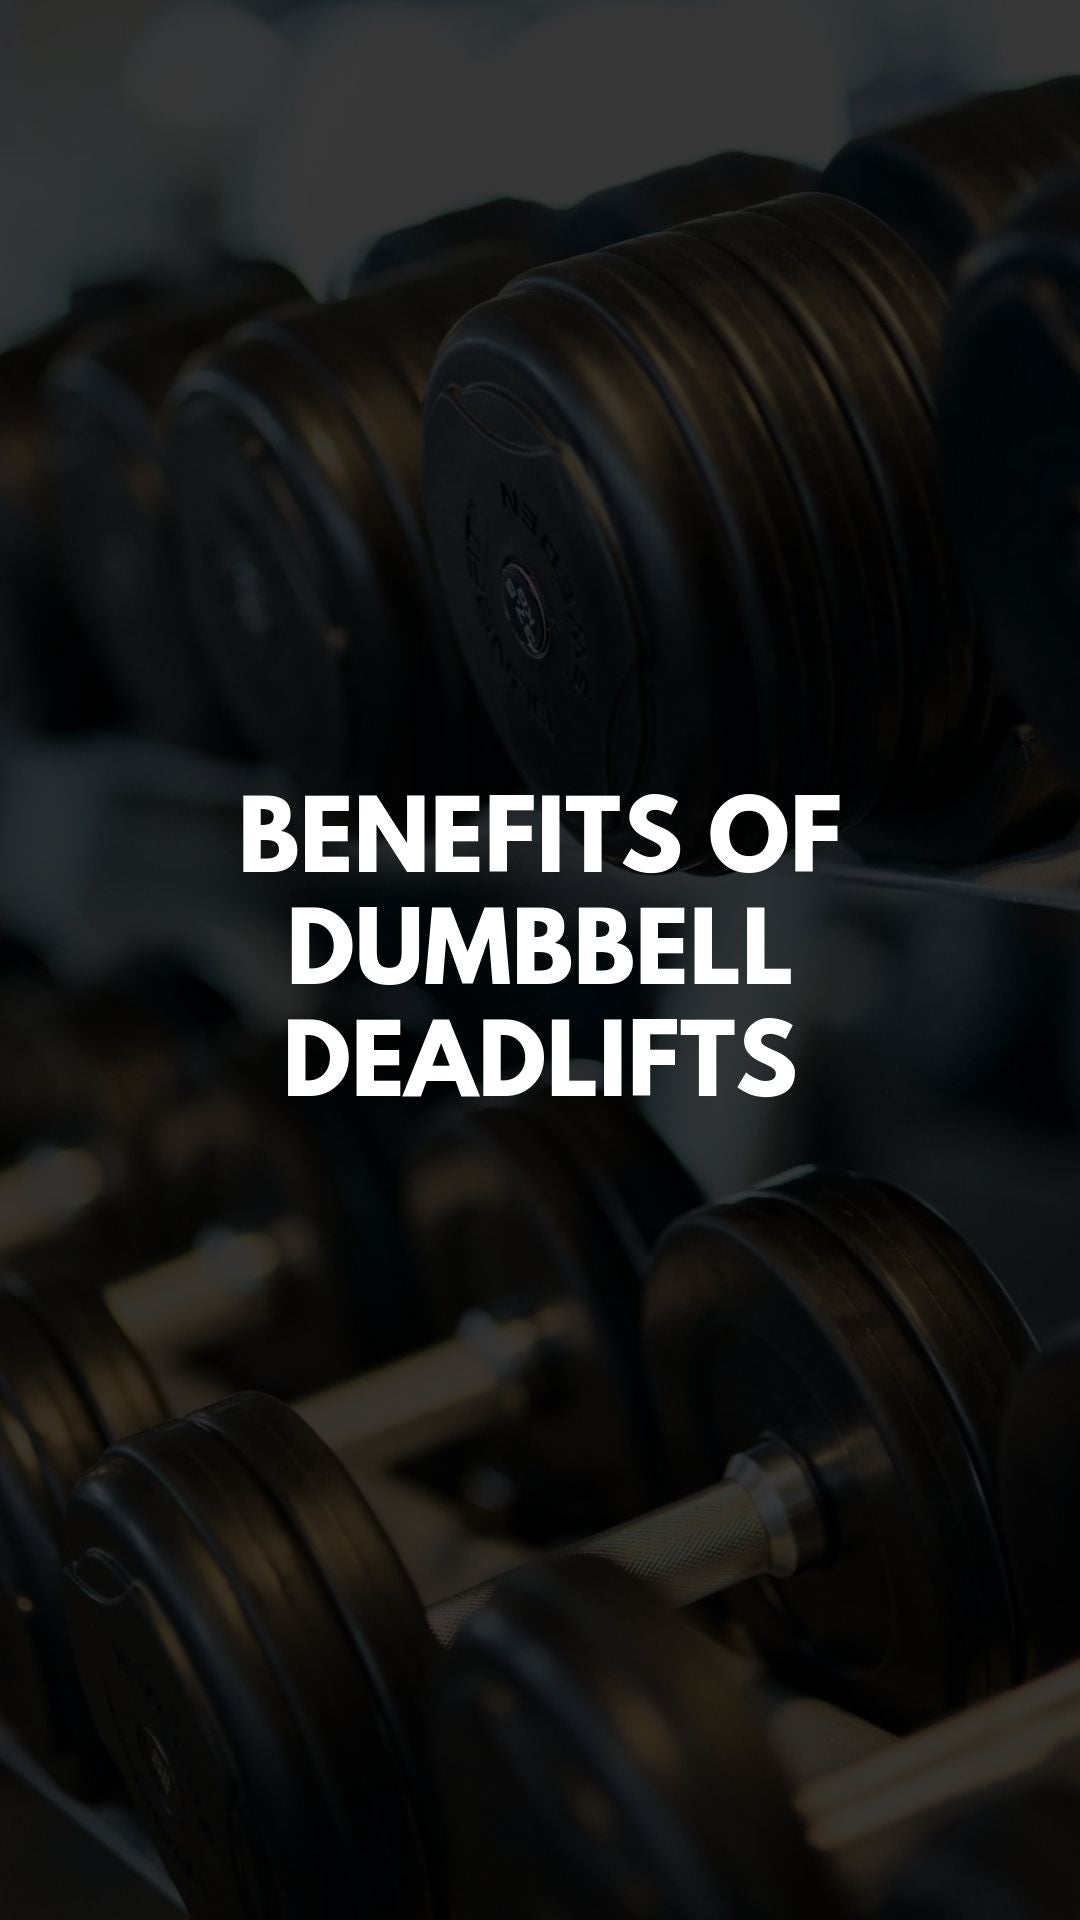 Benefits of Dumbbell Deadlifts